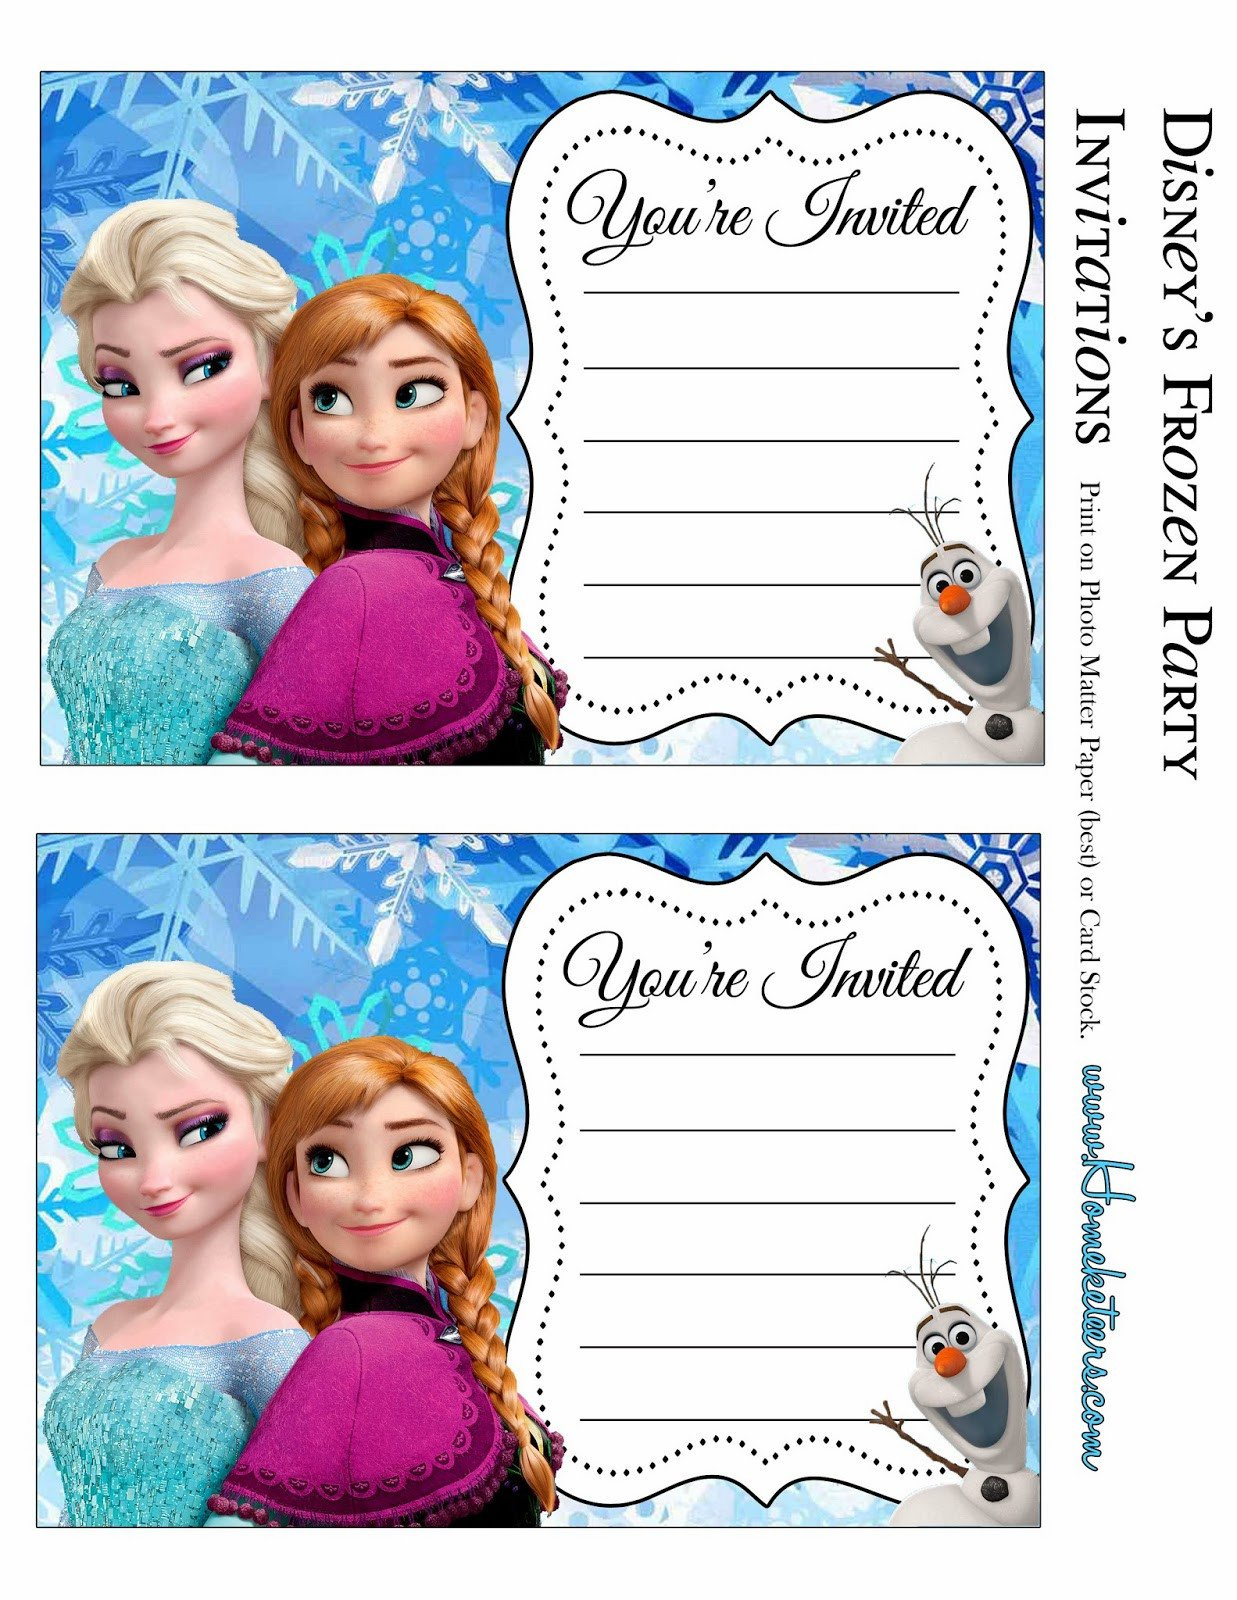 Free Printable Frozen Invites Frozen Party Free Printable Invitations